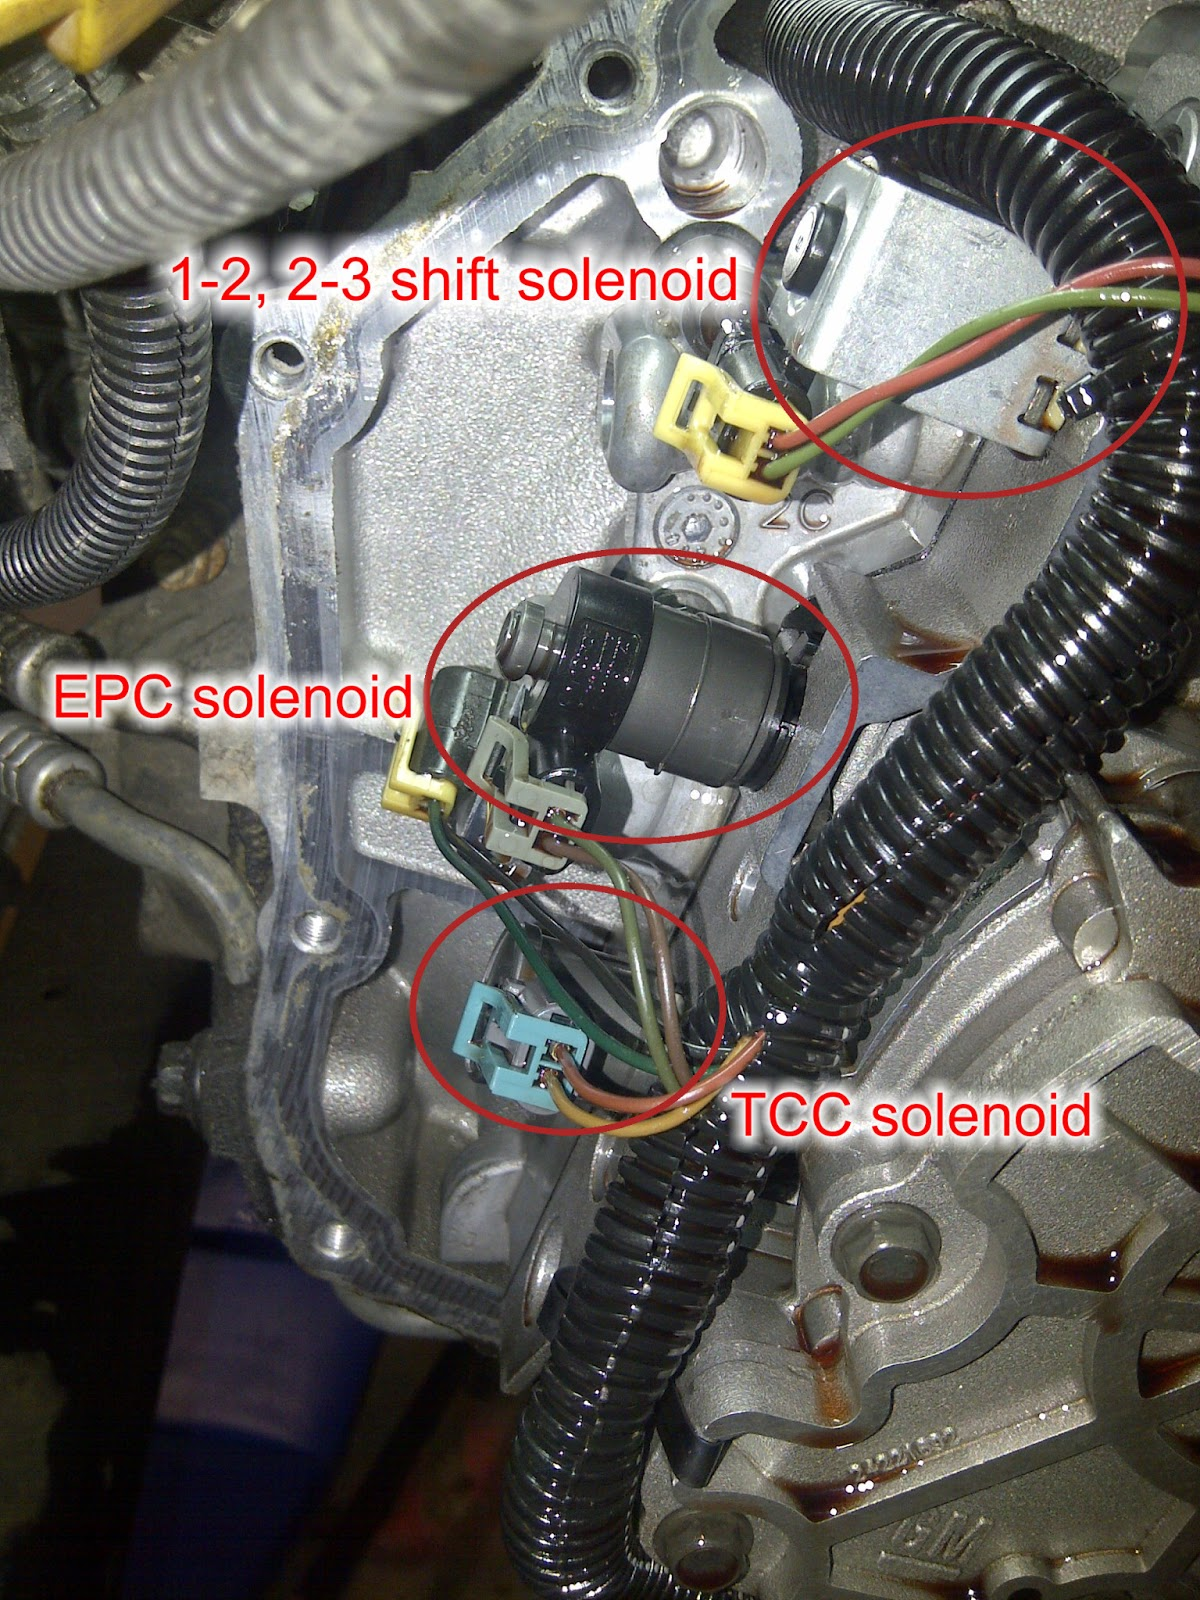 4fuqm Need Directions Diagram Replace Car likewise 2001 Volvo S80 Wiring Diagram additionally Acura Engine Diagram as well Acura Mdx Fuse Box Diagram 429461 as well 2010 Team Pilipinas Nike Jersey Review. on 2009 acura tl engine compartment